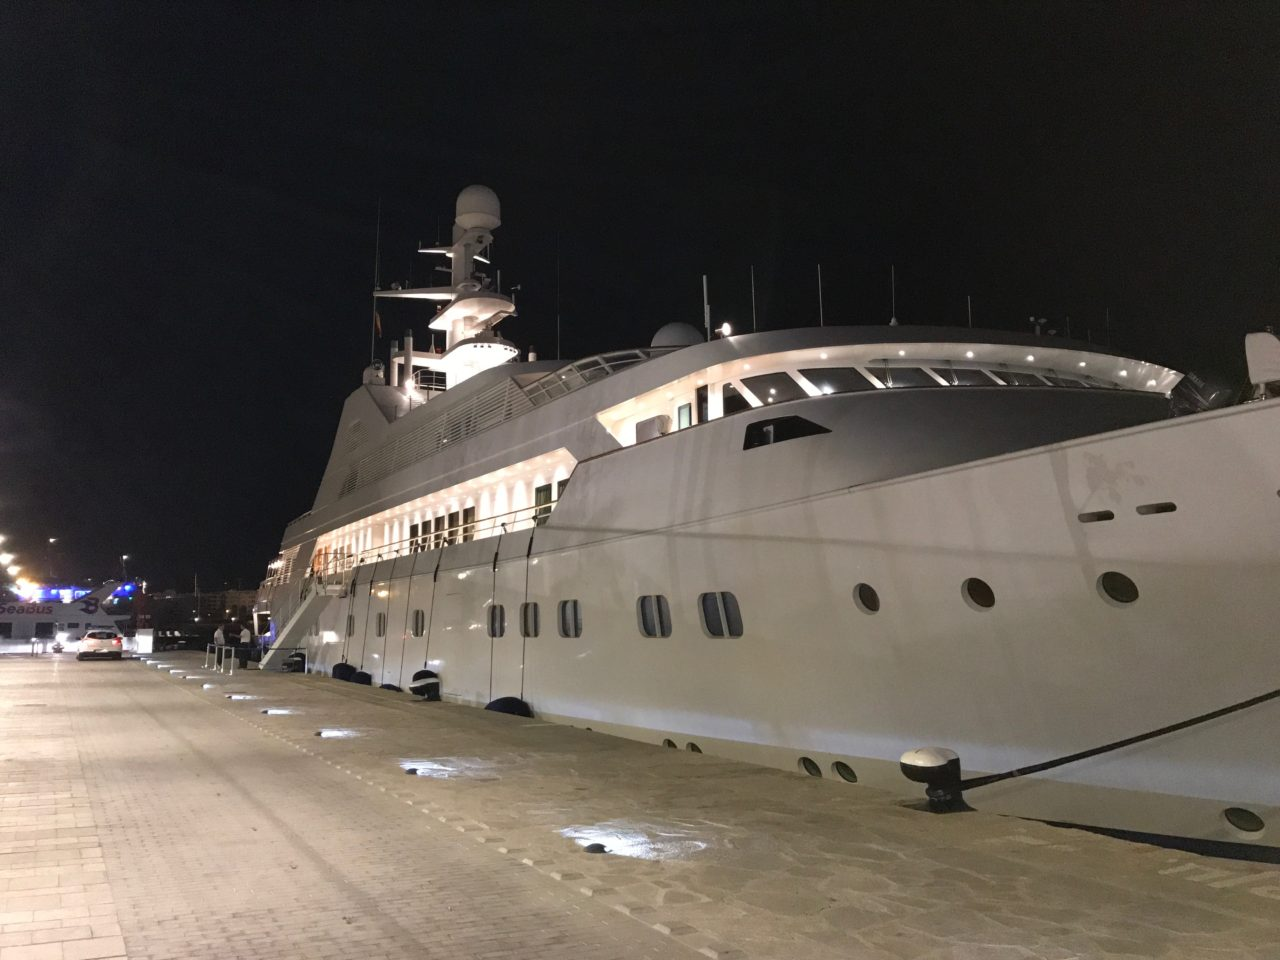 Massive Luxury Yacht Boat Tied To A Dock